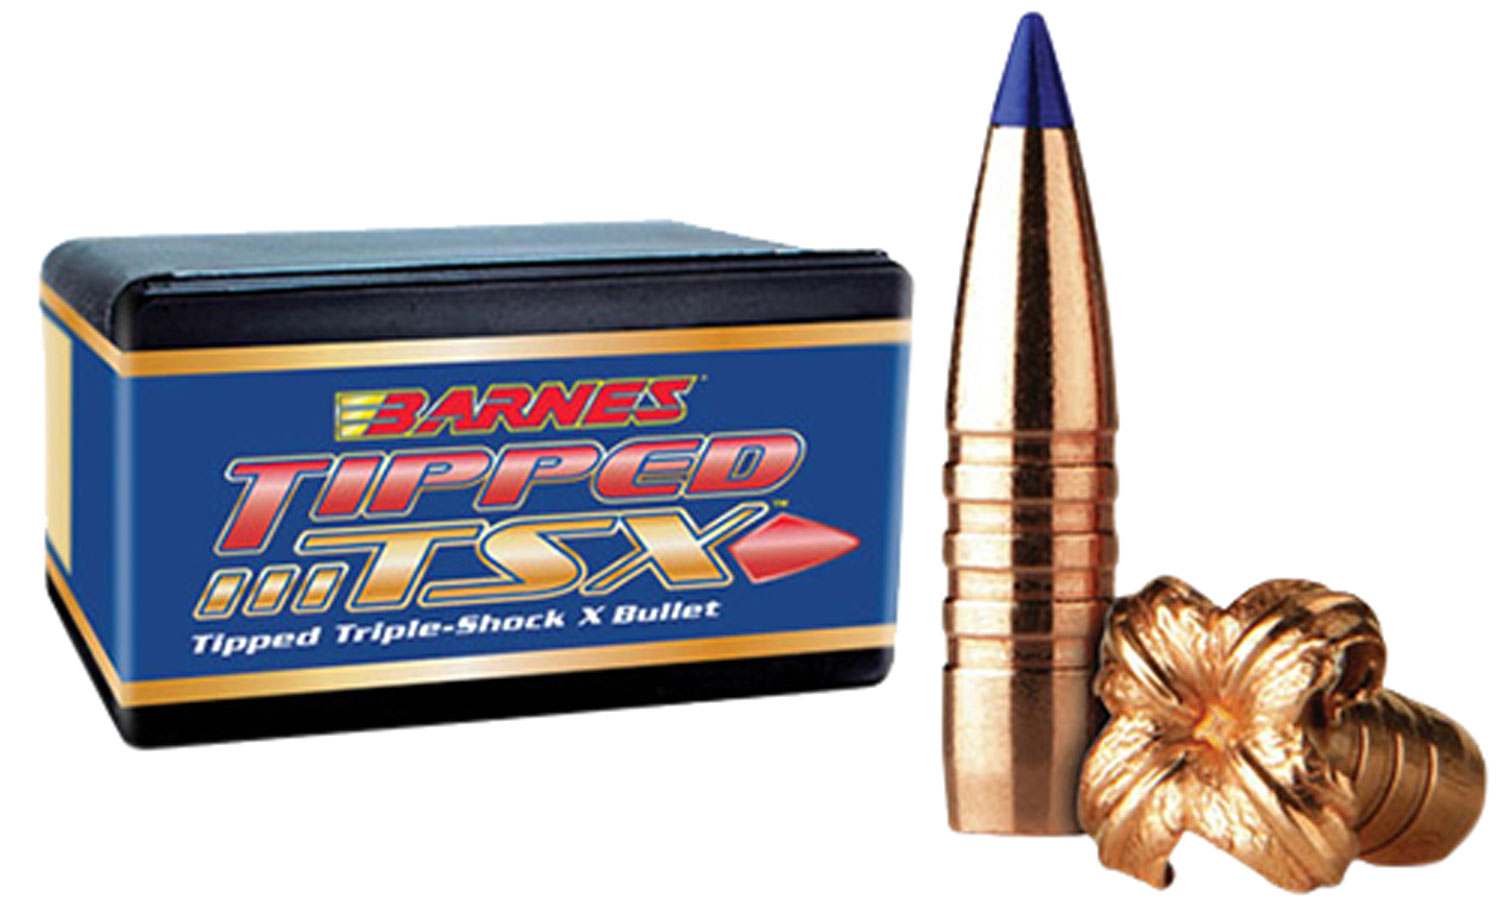 Barnes 33874 Triple-Shock X 338 185 GR 50 Per Box